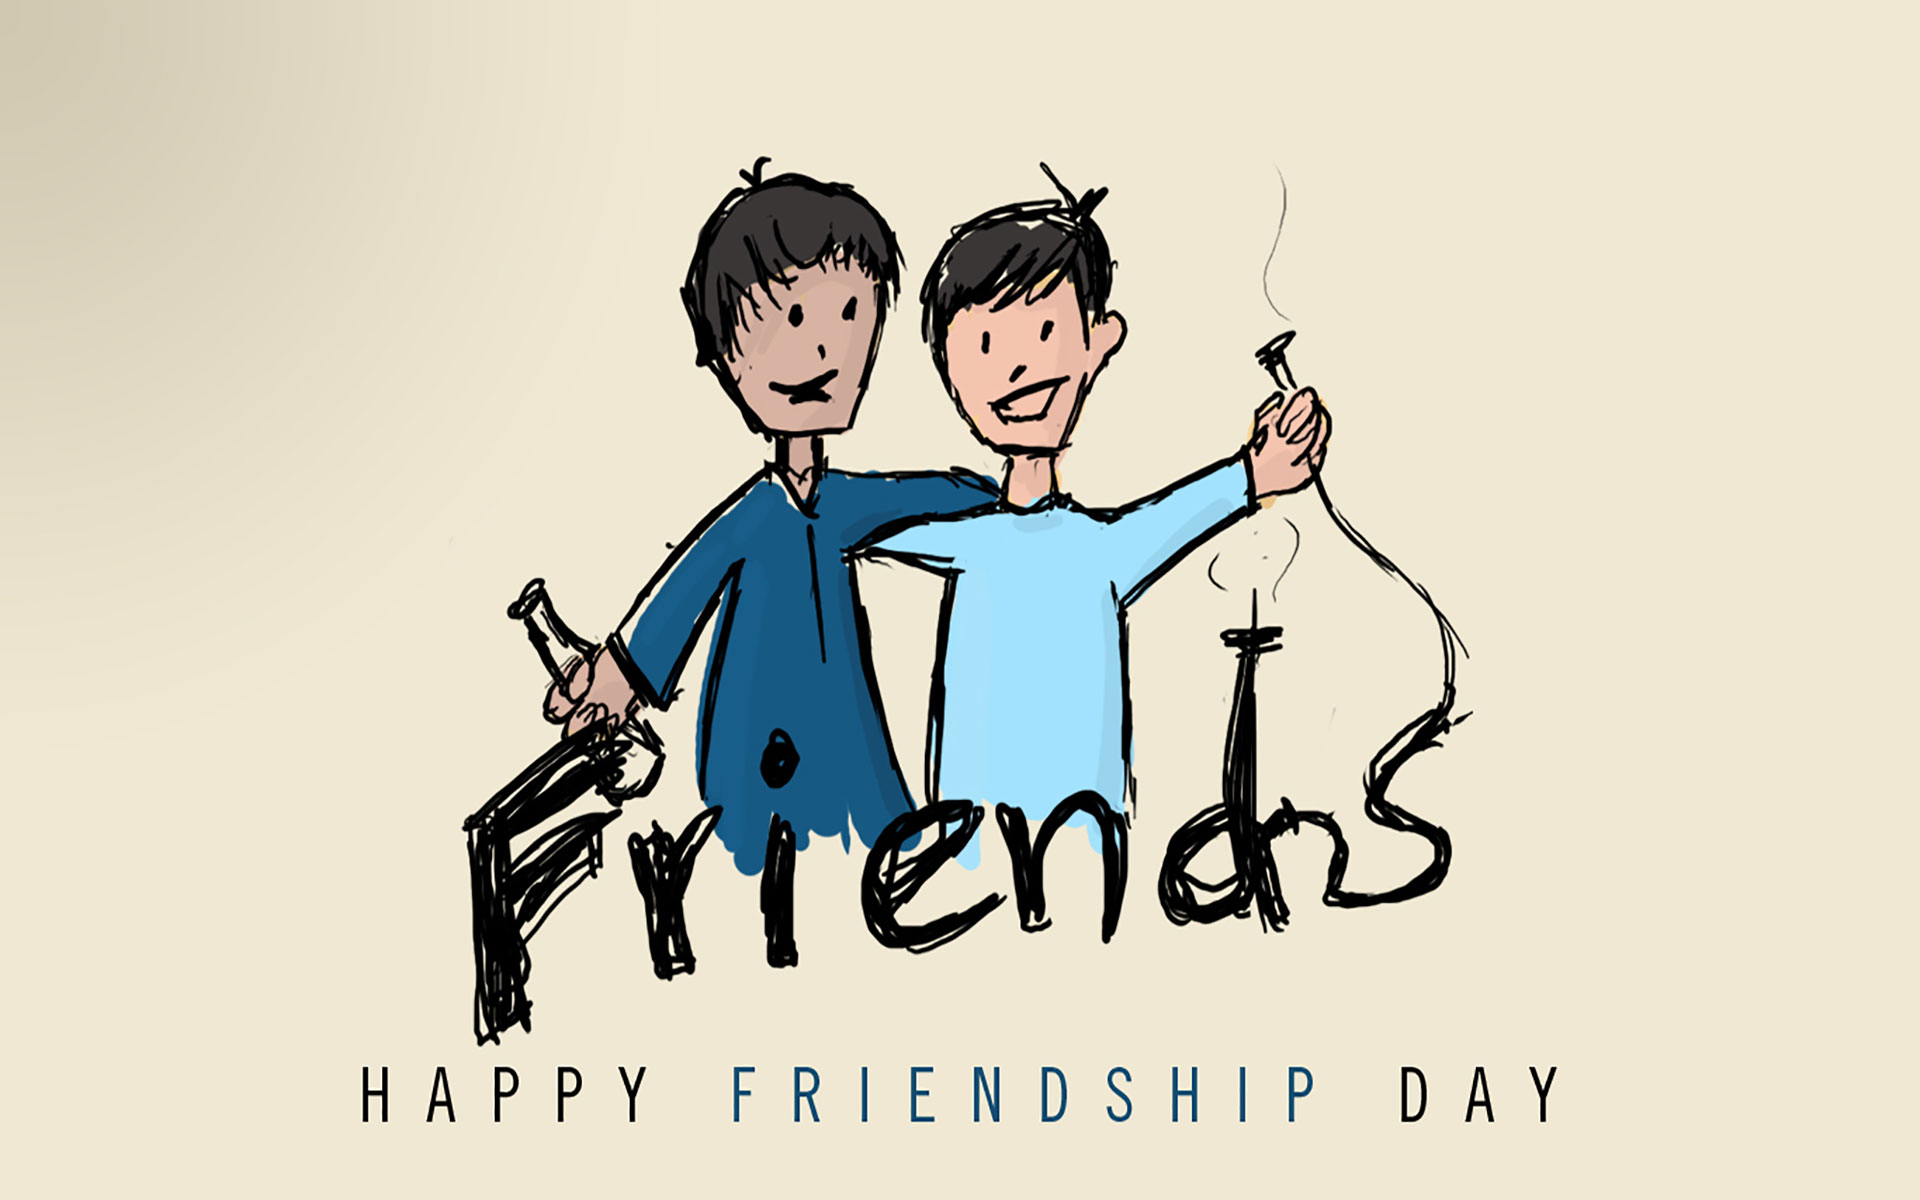 Wallpaper Happy Friendship Day Image For